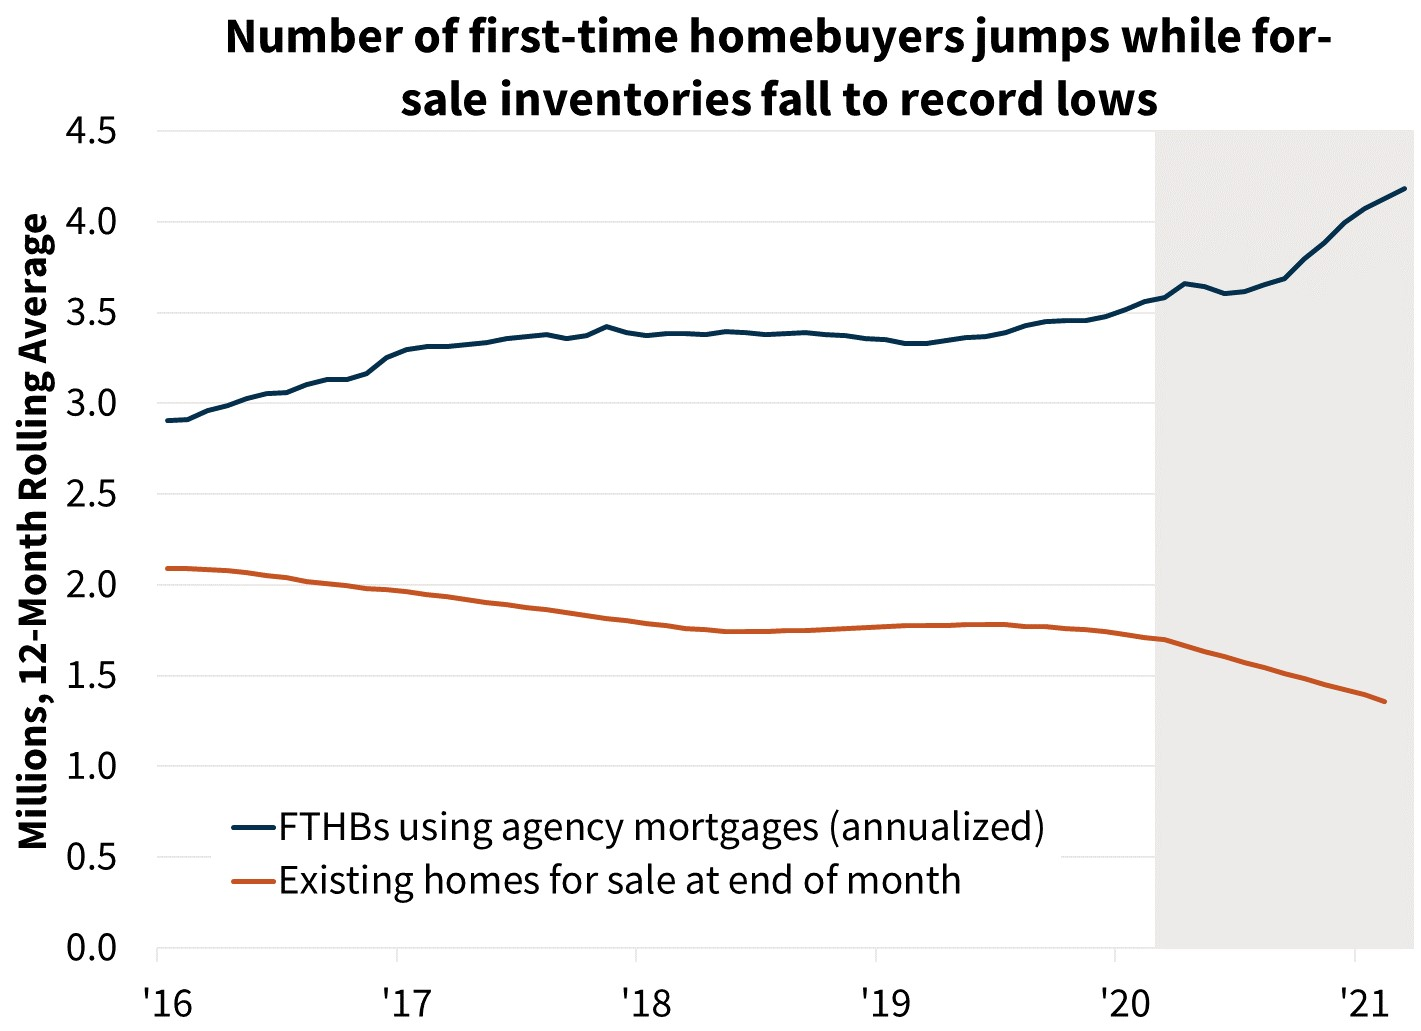 Number of first-time homebuyers jumps while for-sale inventories fall to record lows